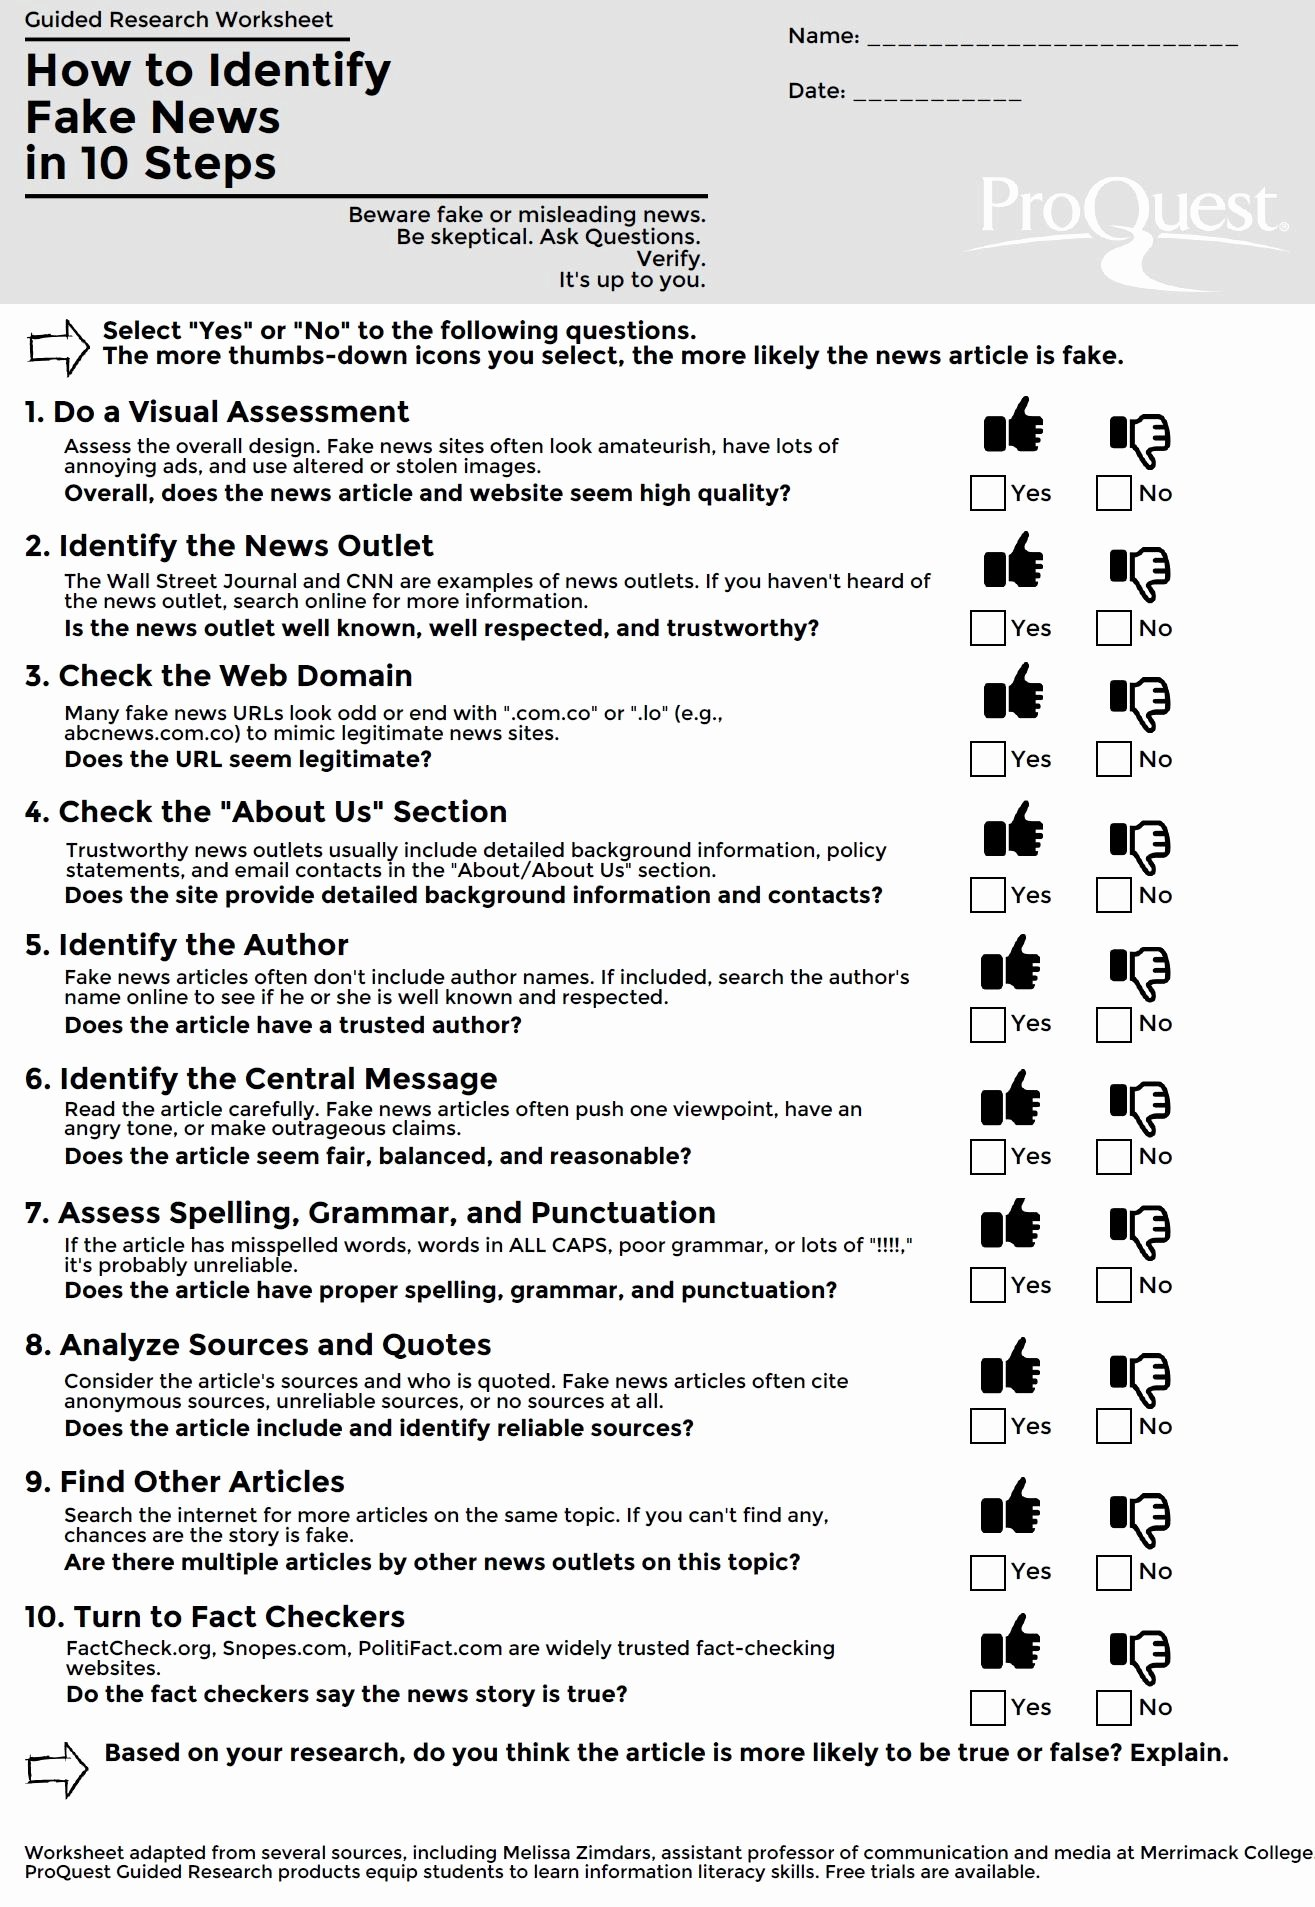 Reliable sources Worksheet Middle School New This Blog Archive How to Identify Fake News In 10